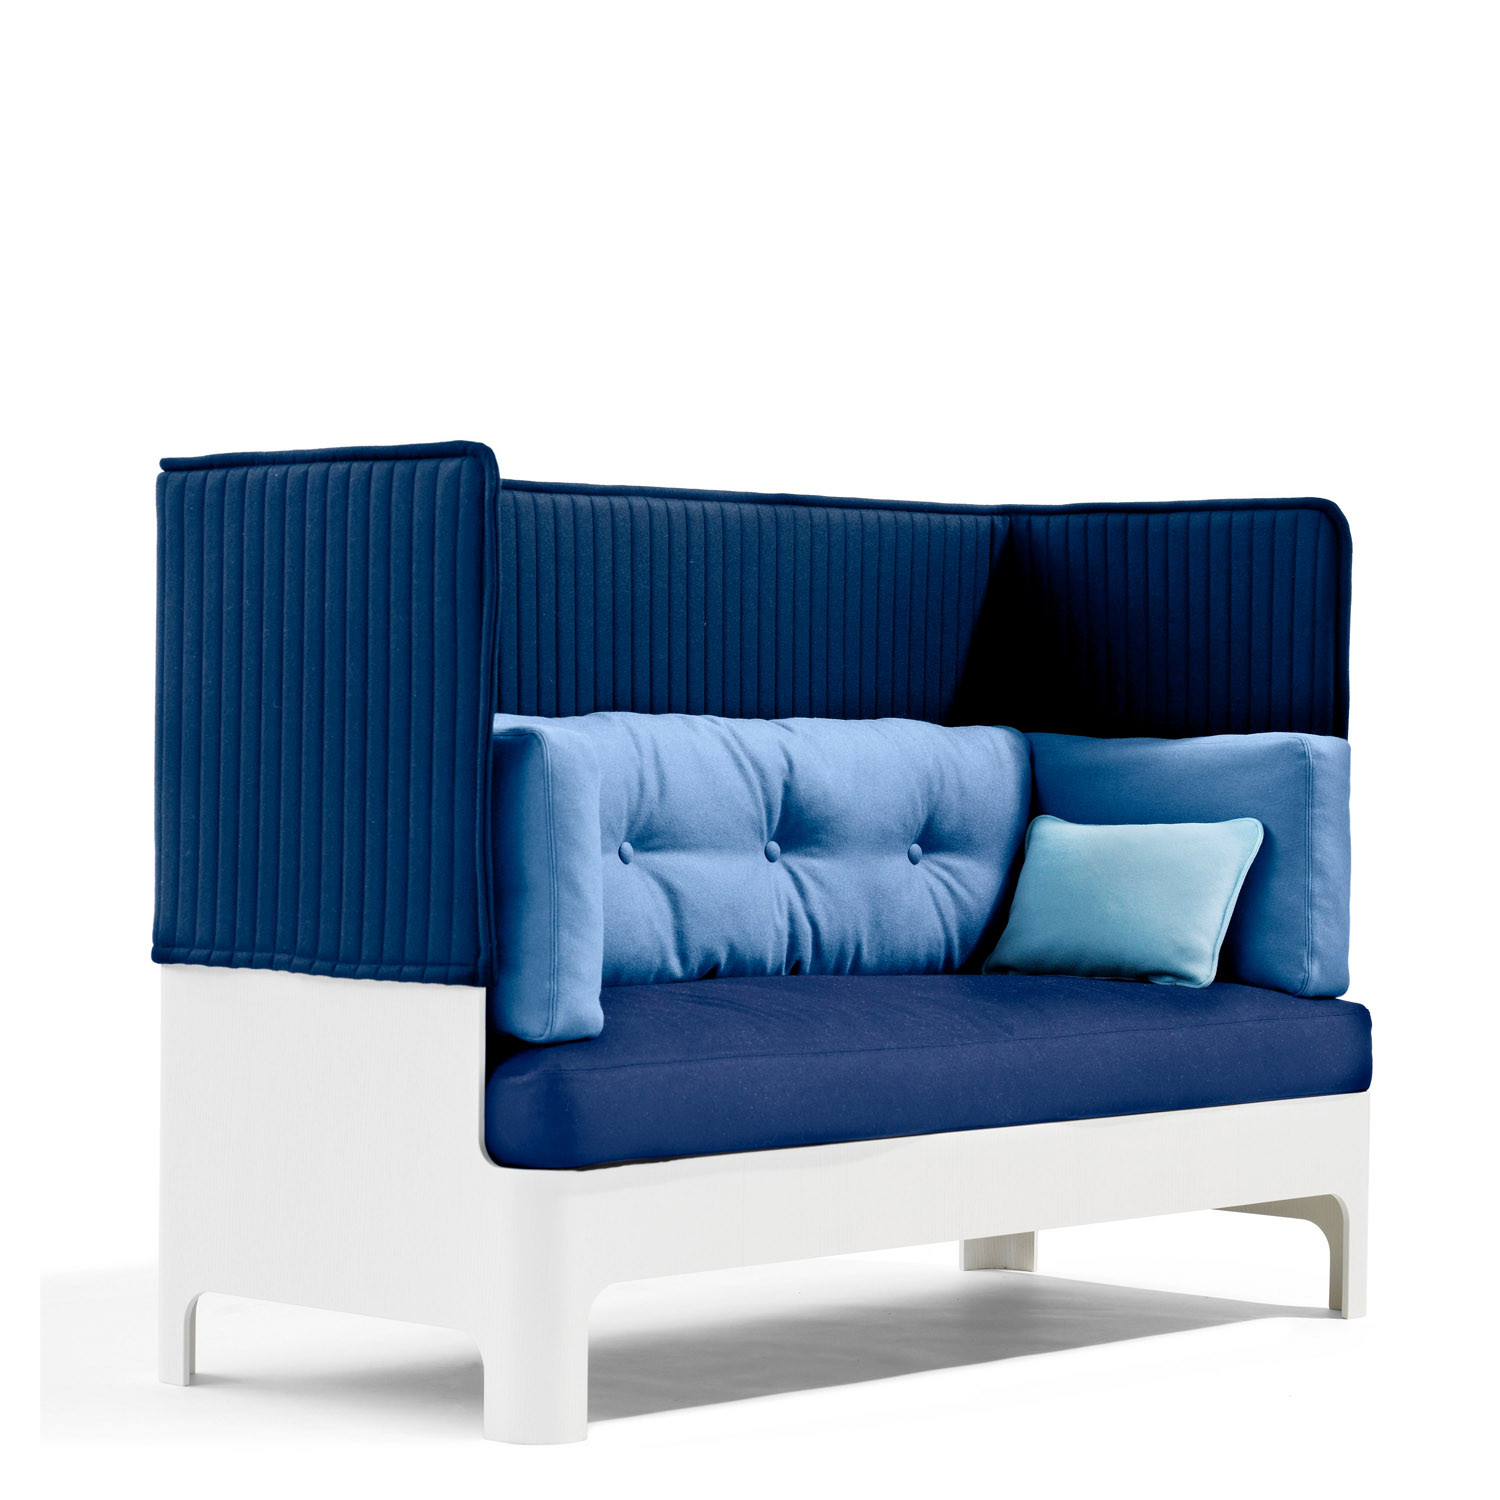 Koja Acoustic Soft Seating by Mattson